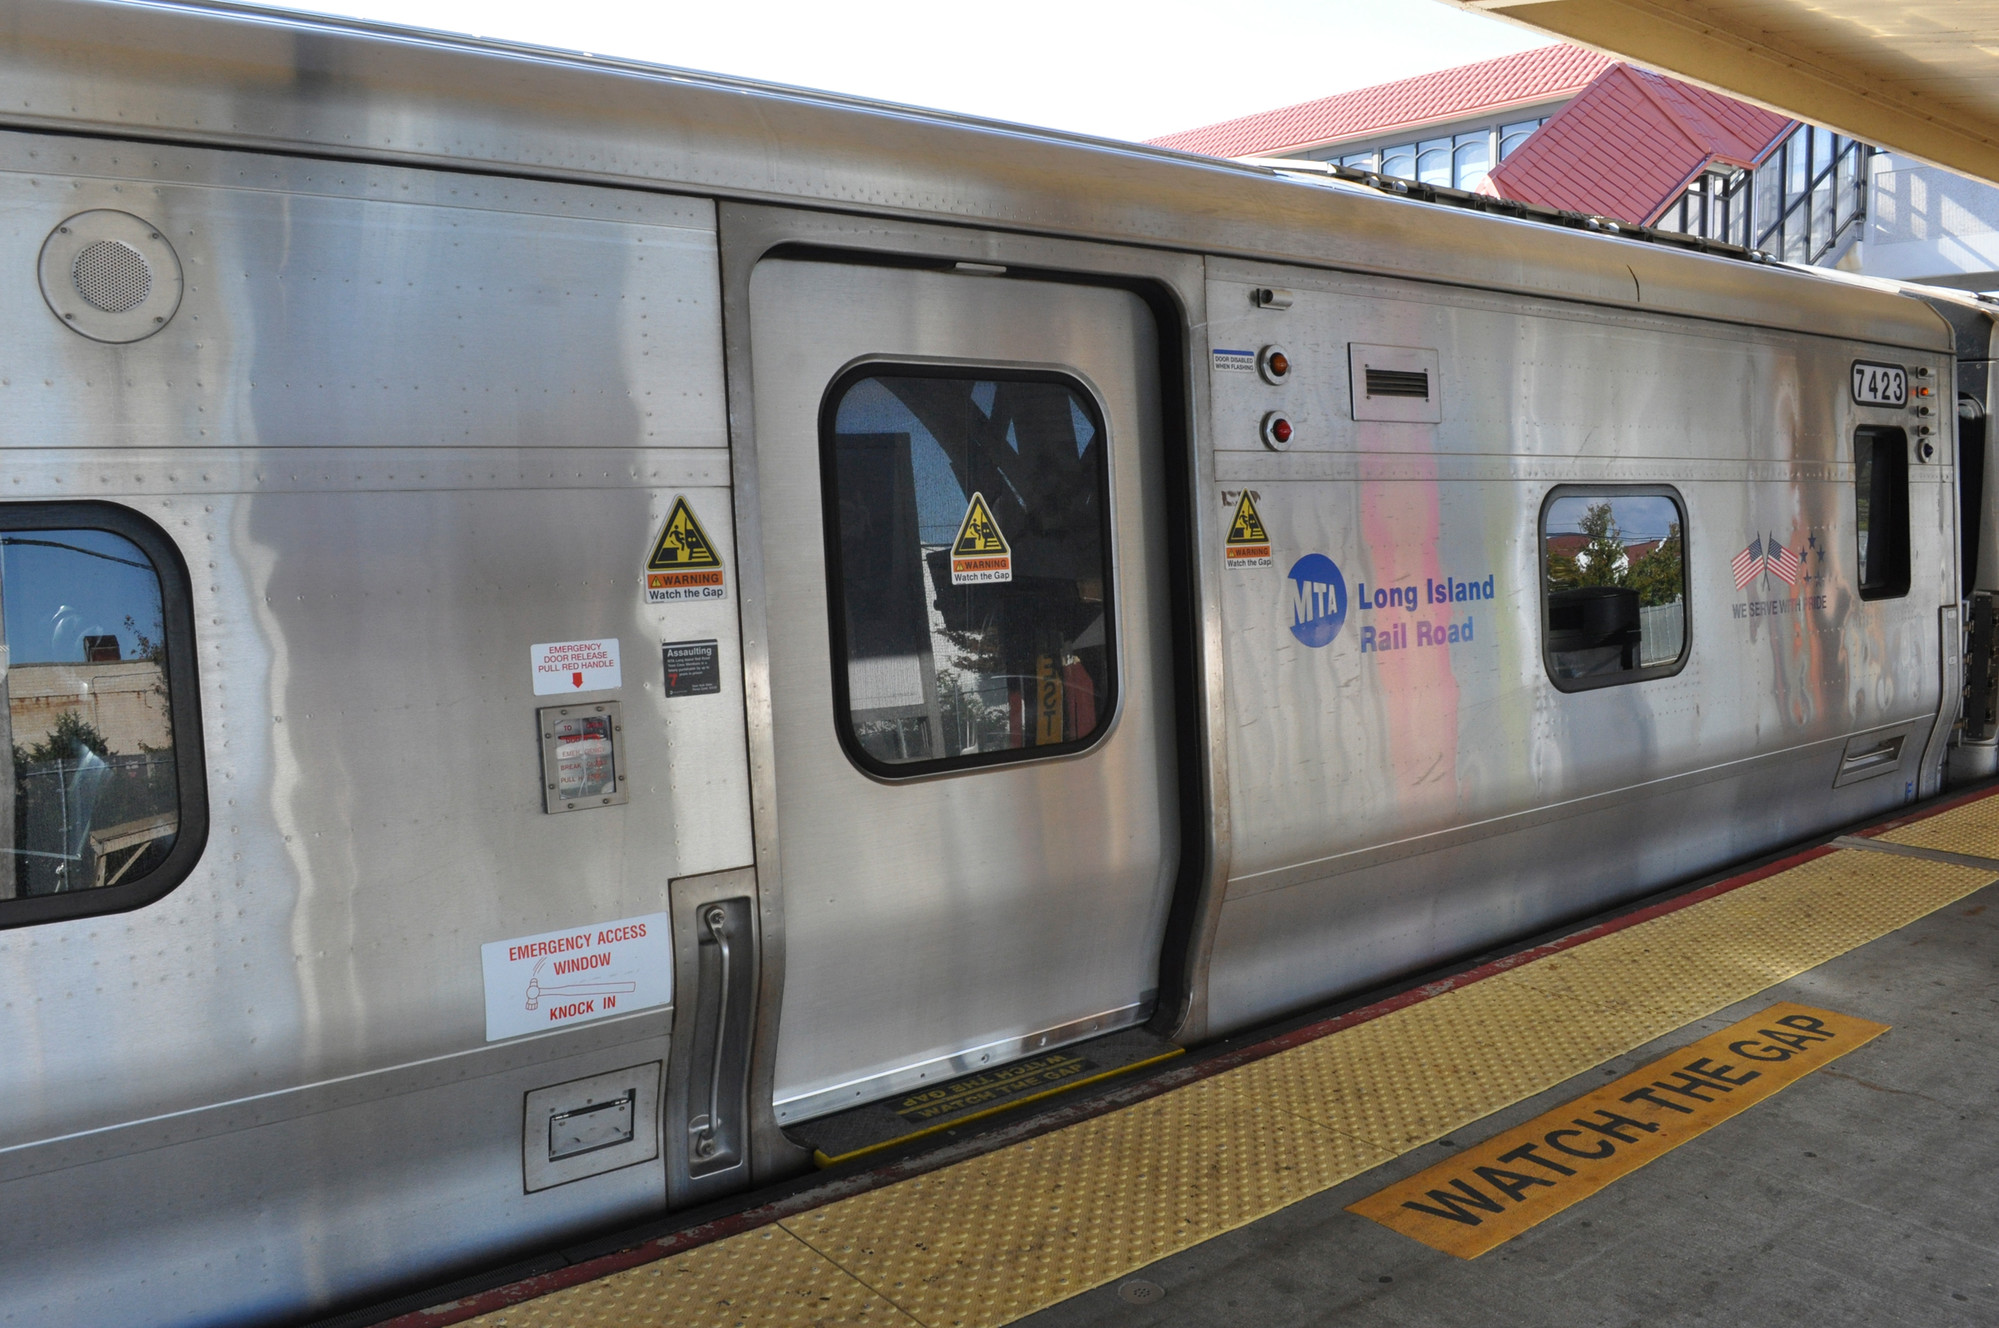 Long Island Rail Road and Metro-North will have 27 additional trains running for an early holiday getaway on Friday.